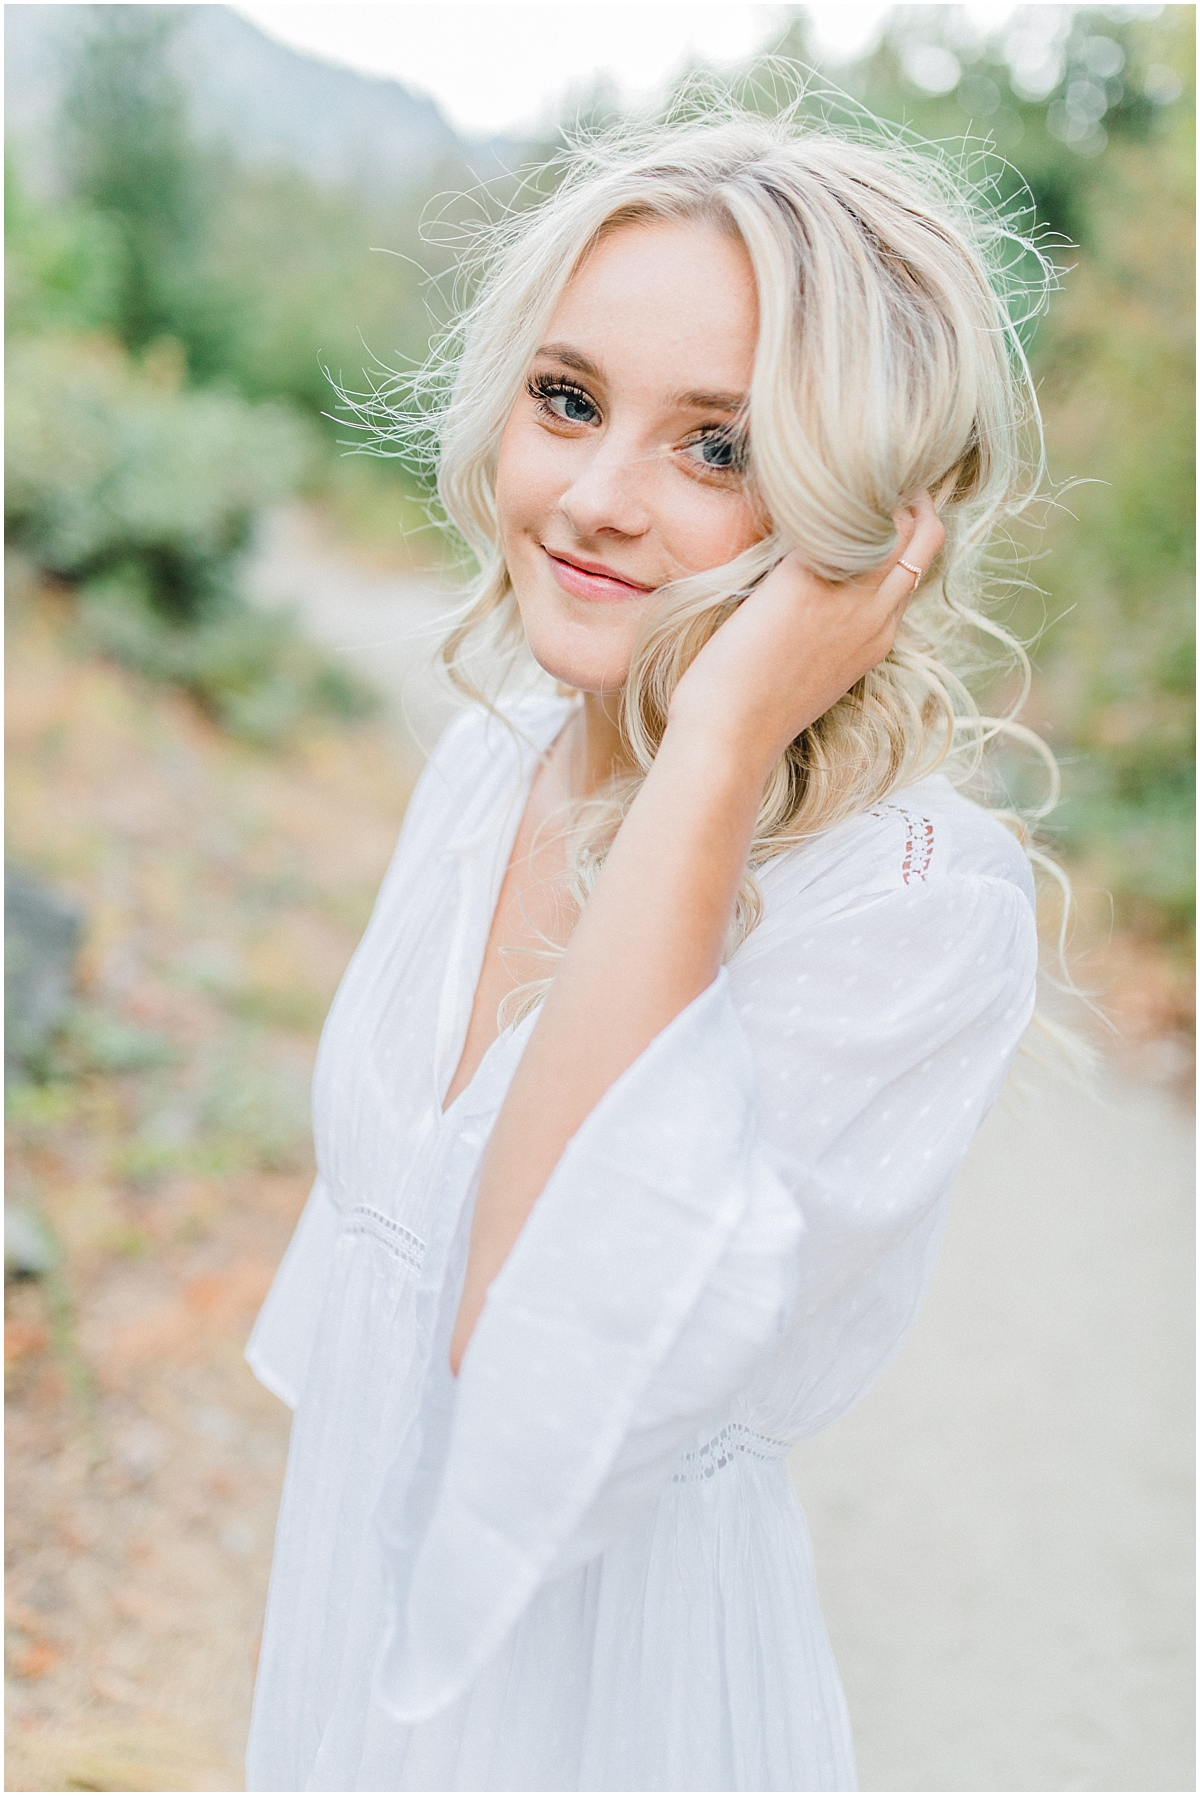 Emma Rose Company | Pacific Northwest Senior Portrait Photographer | Light and Airy Styled Senior Portraits | What to Wear to Senior Pictures | Kindred Presets | Seattle, Wenatchee and Portland Wedding and Portrait Photographer | Emma Rose27.jpg